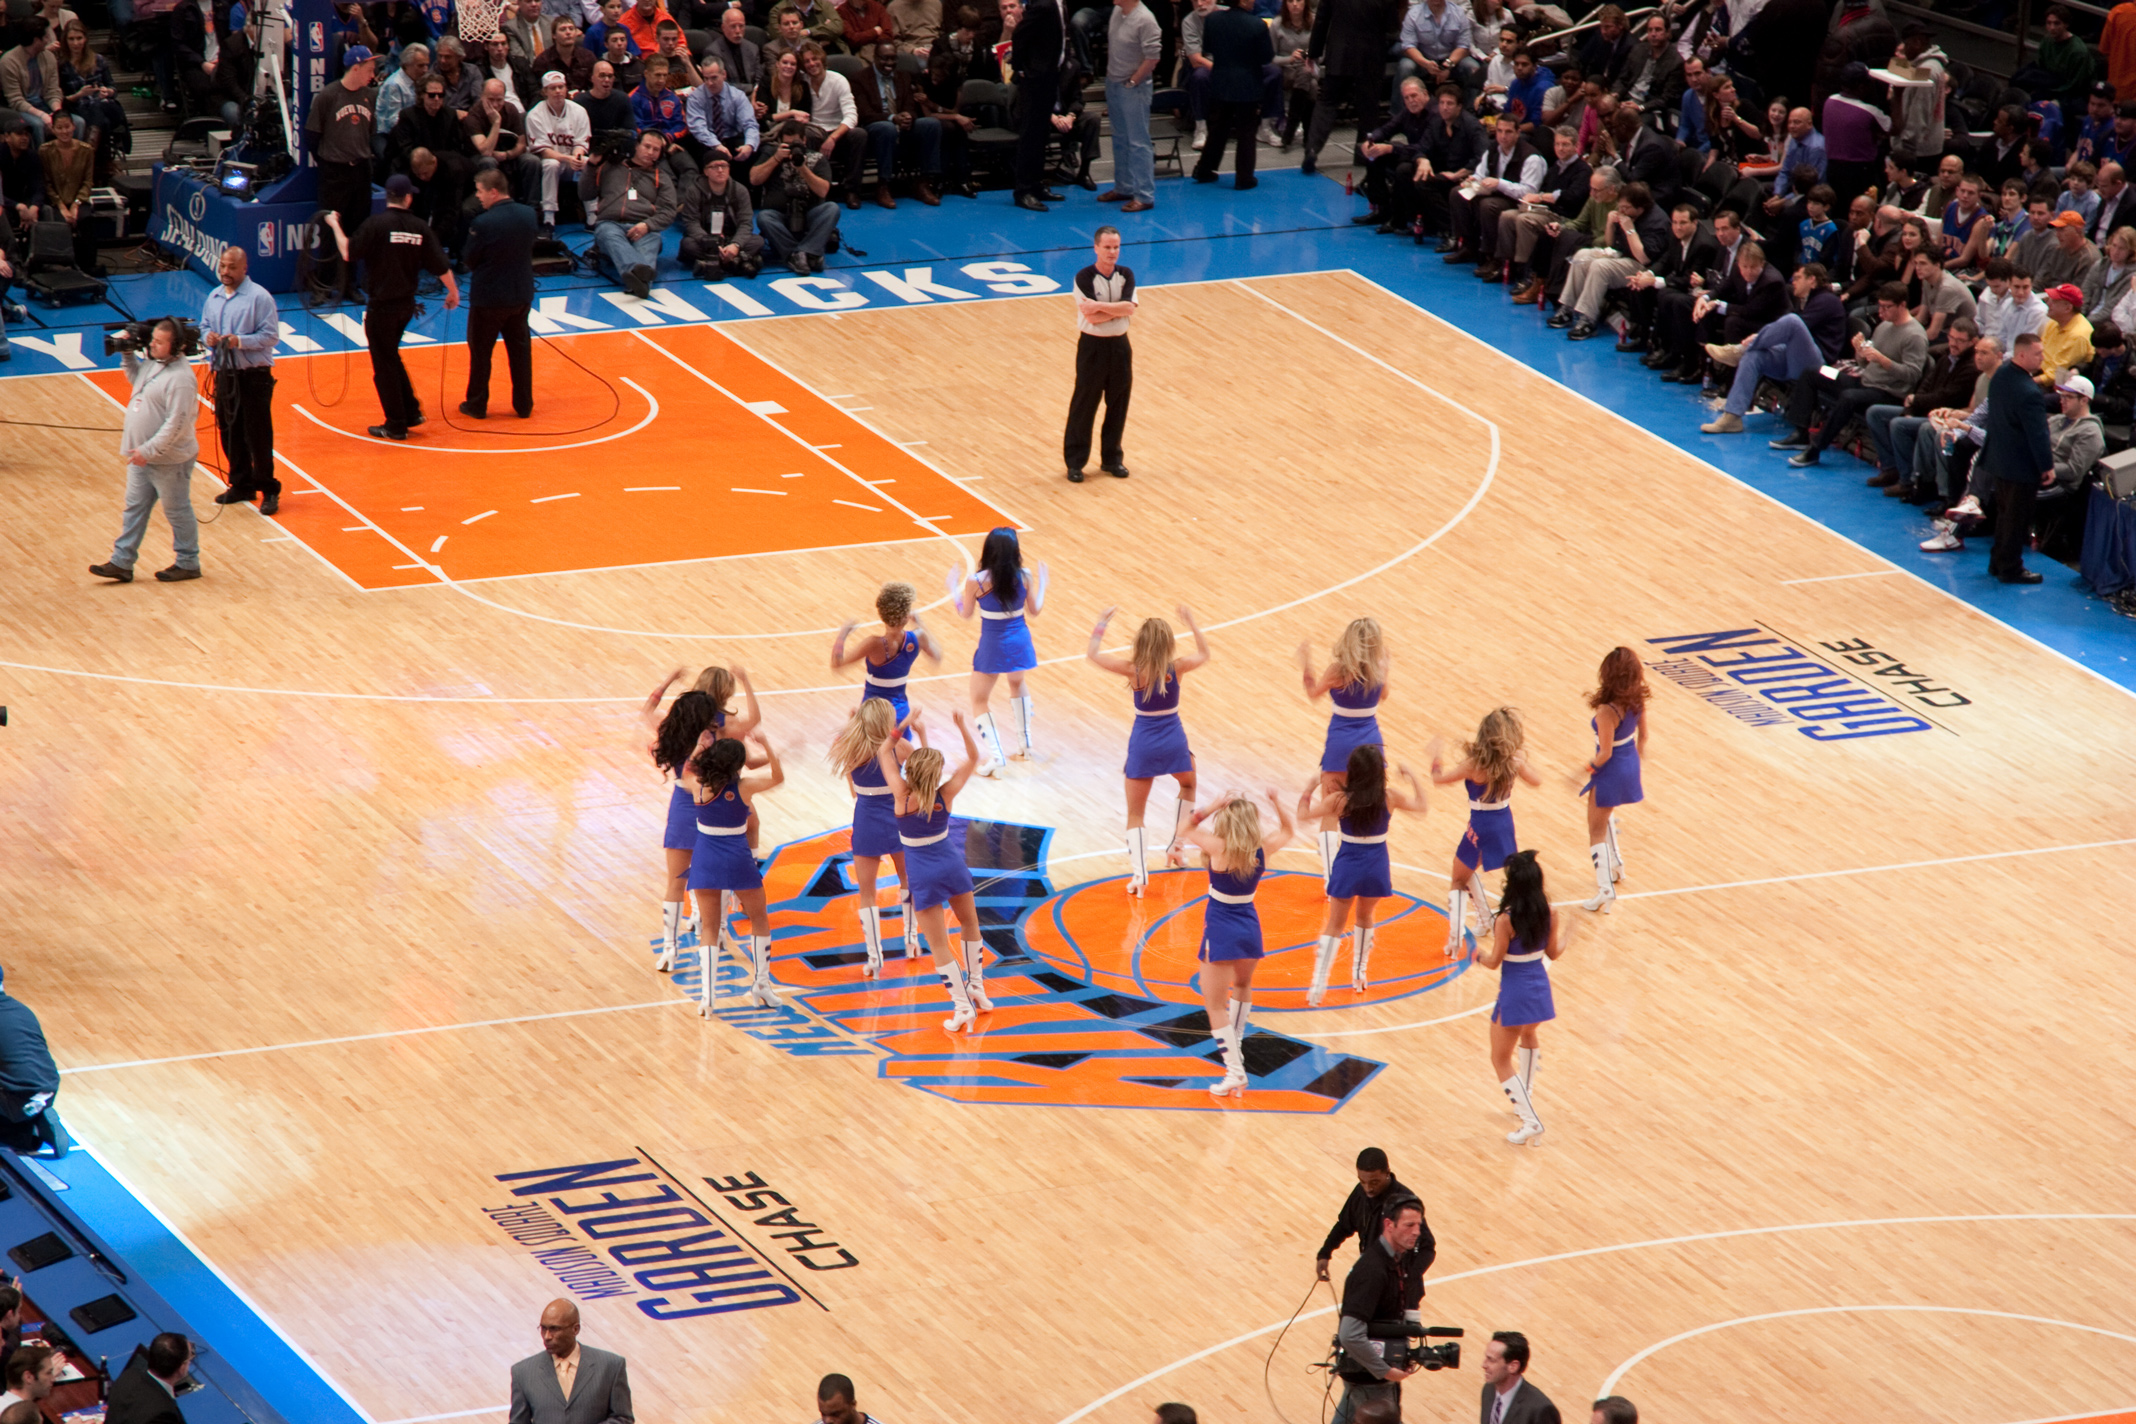 New York Knicks cheerleaders on the court at Madison Square Garden. Image credit:    sottolestelle   /   Creative Commons